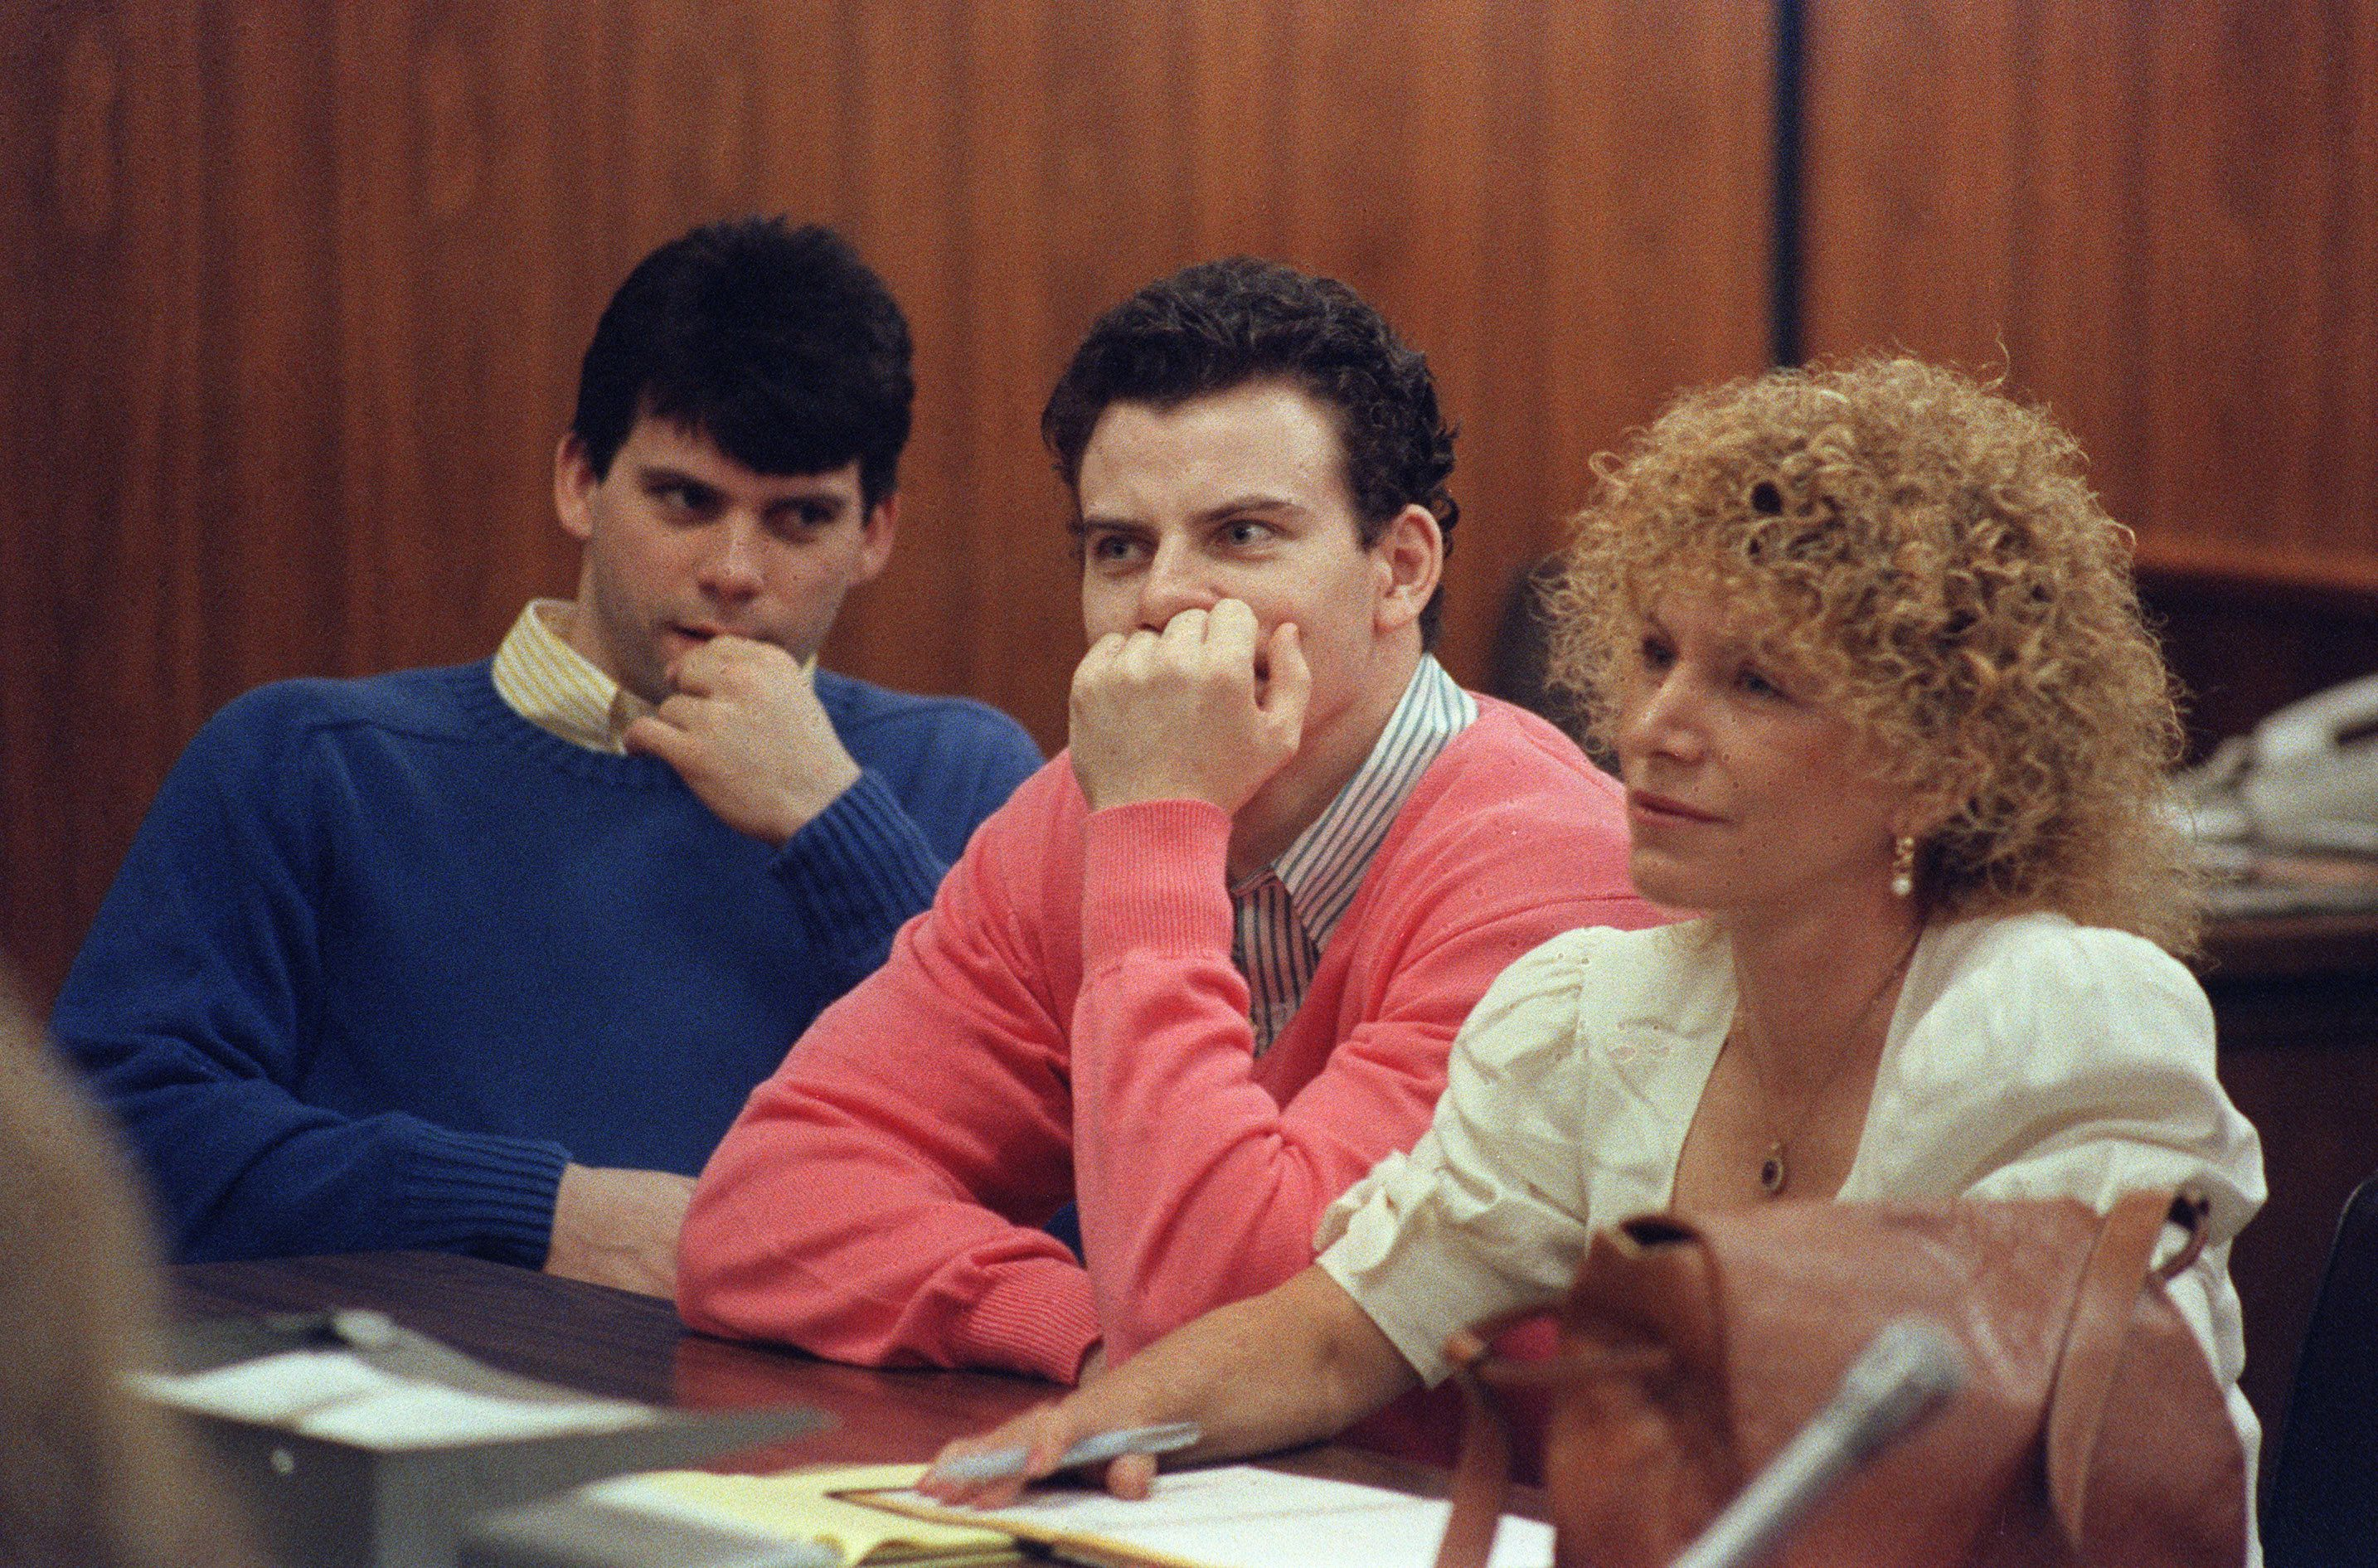 Erik Menendez (C) and his brother Lyle (L) are pictured, on August 12, 1991 in Beverly Hills. They are accused of killing their parents, Jose and Mary Louise Menendez of Beverly Hills, Calif. AFP PHOTO Mike NELSON (Photo credit should read MIKE NELSON/AFP/Getty Images)